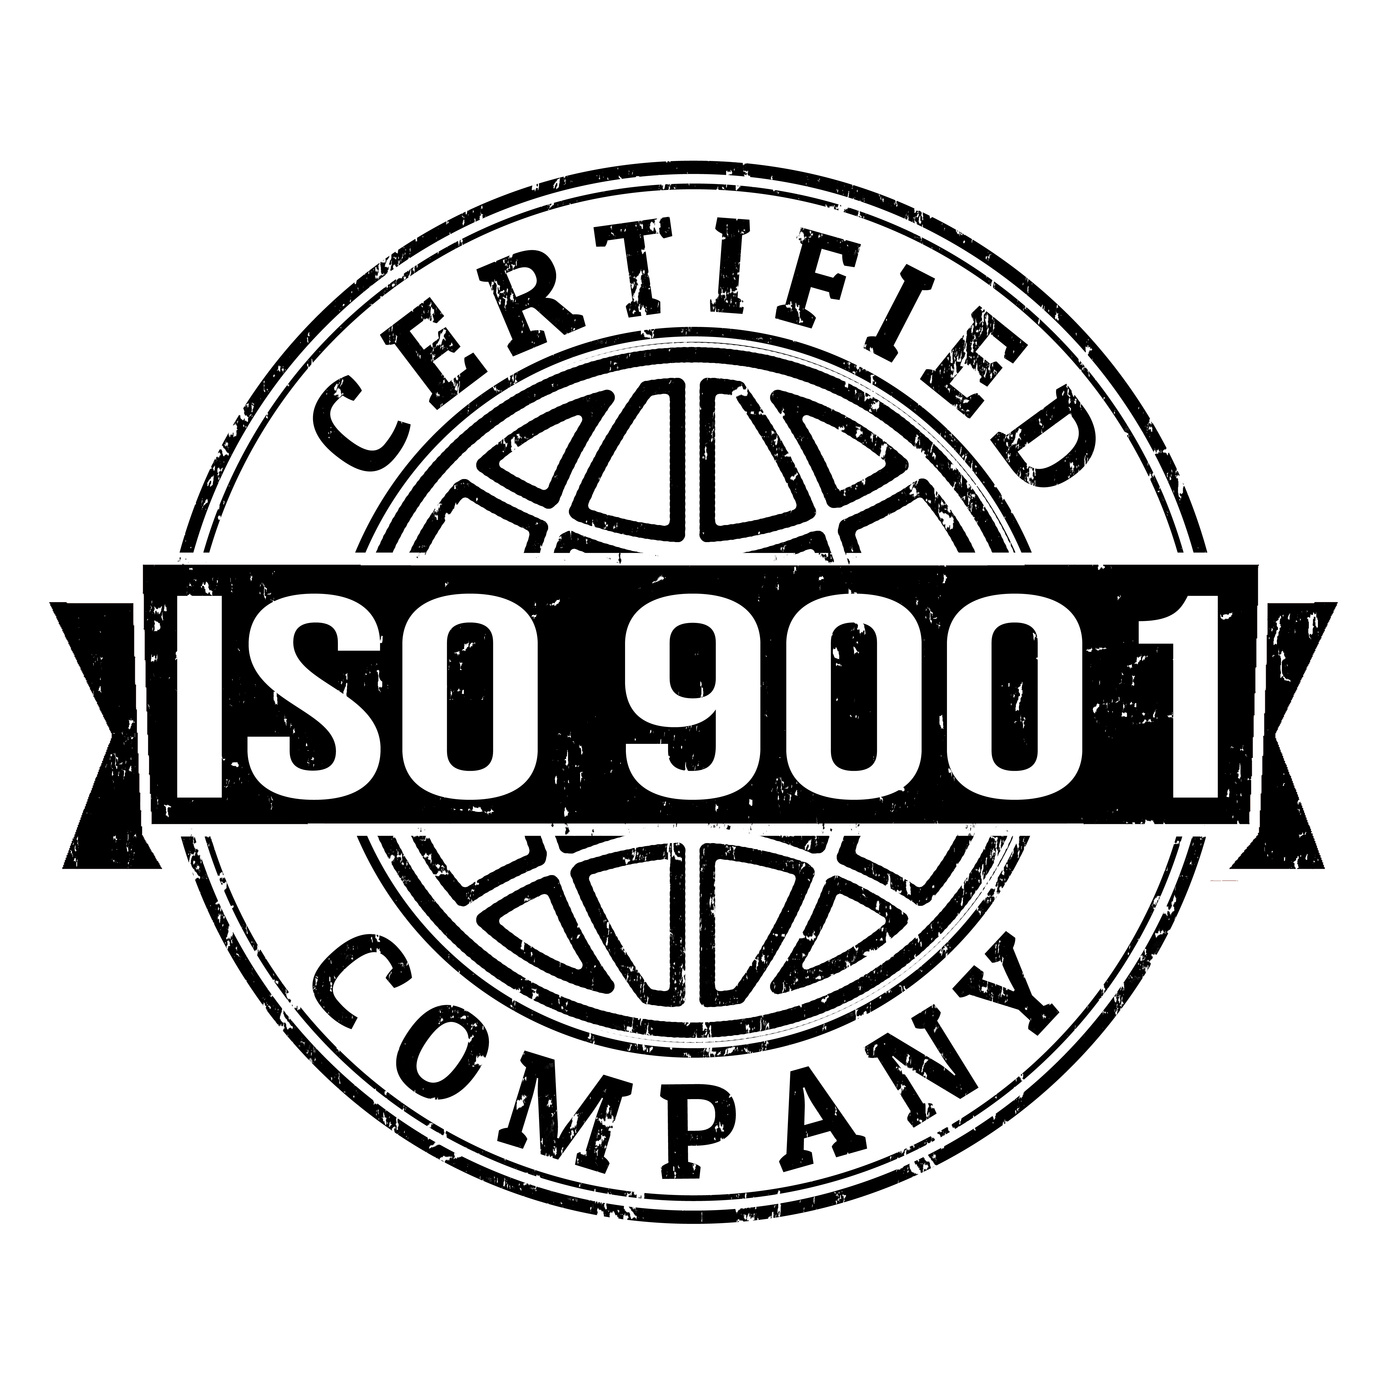 Marlin Steel Has A New Iso Certificate